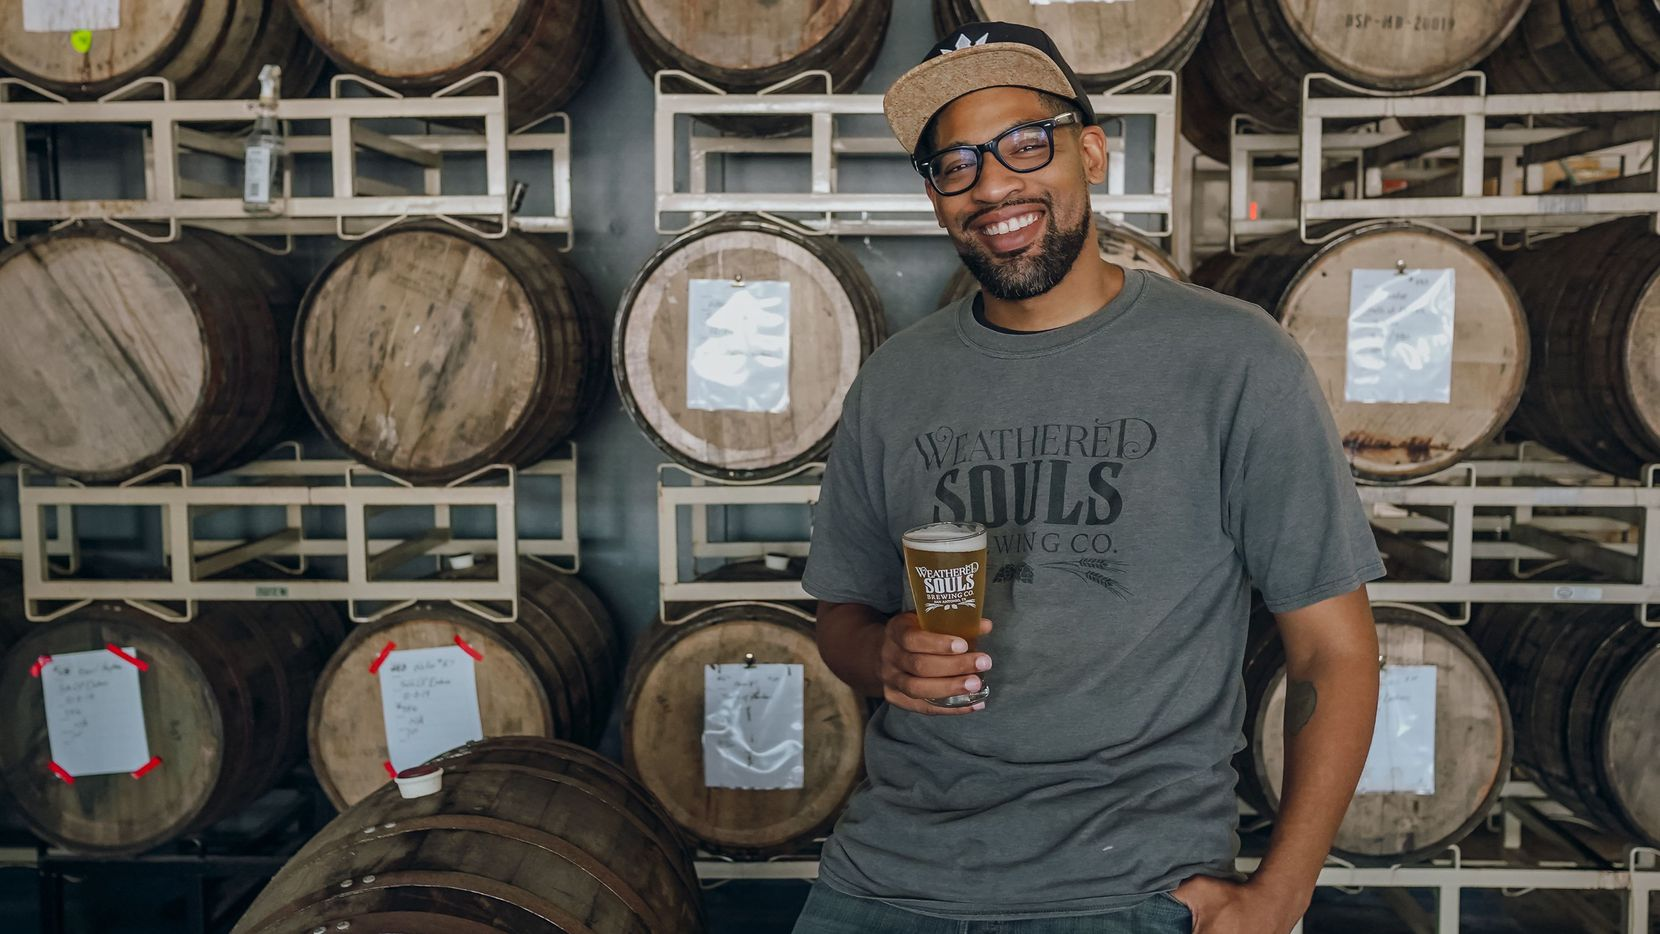 Marcus Baskerville, co owner of Weathered Souls Brewing in San Antonio and founder of Black is Beautiful